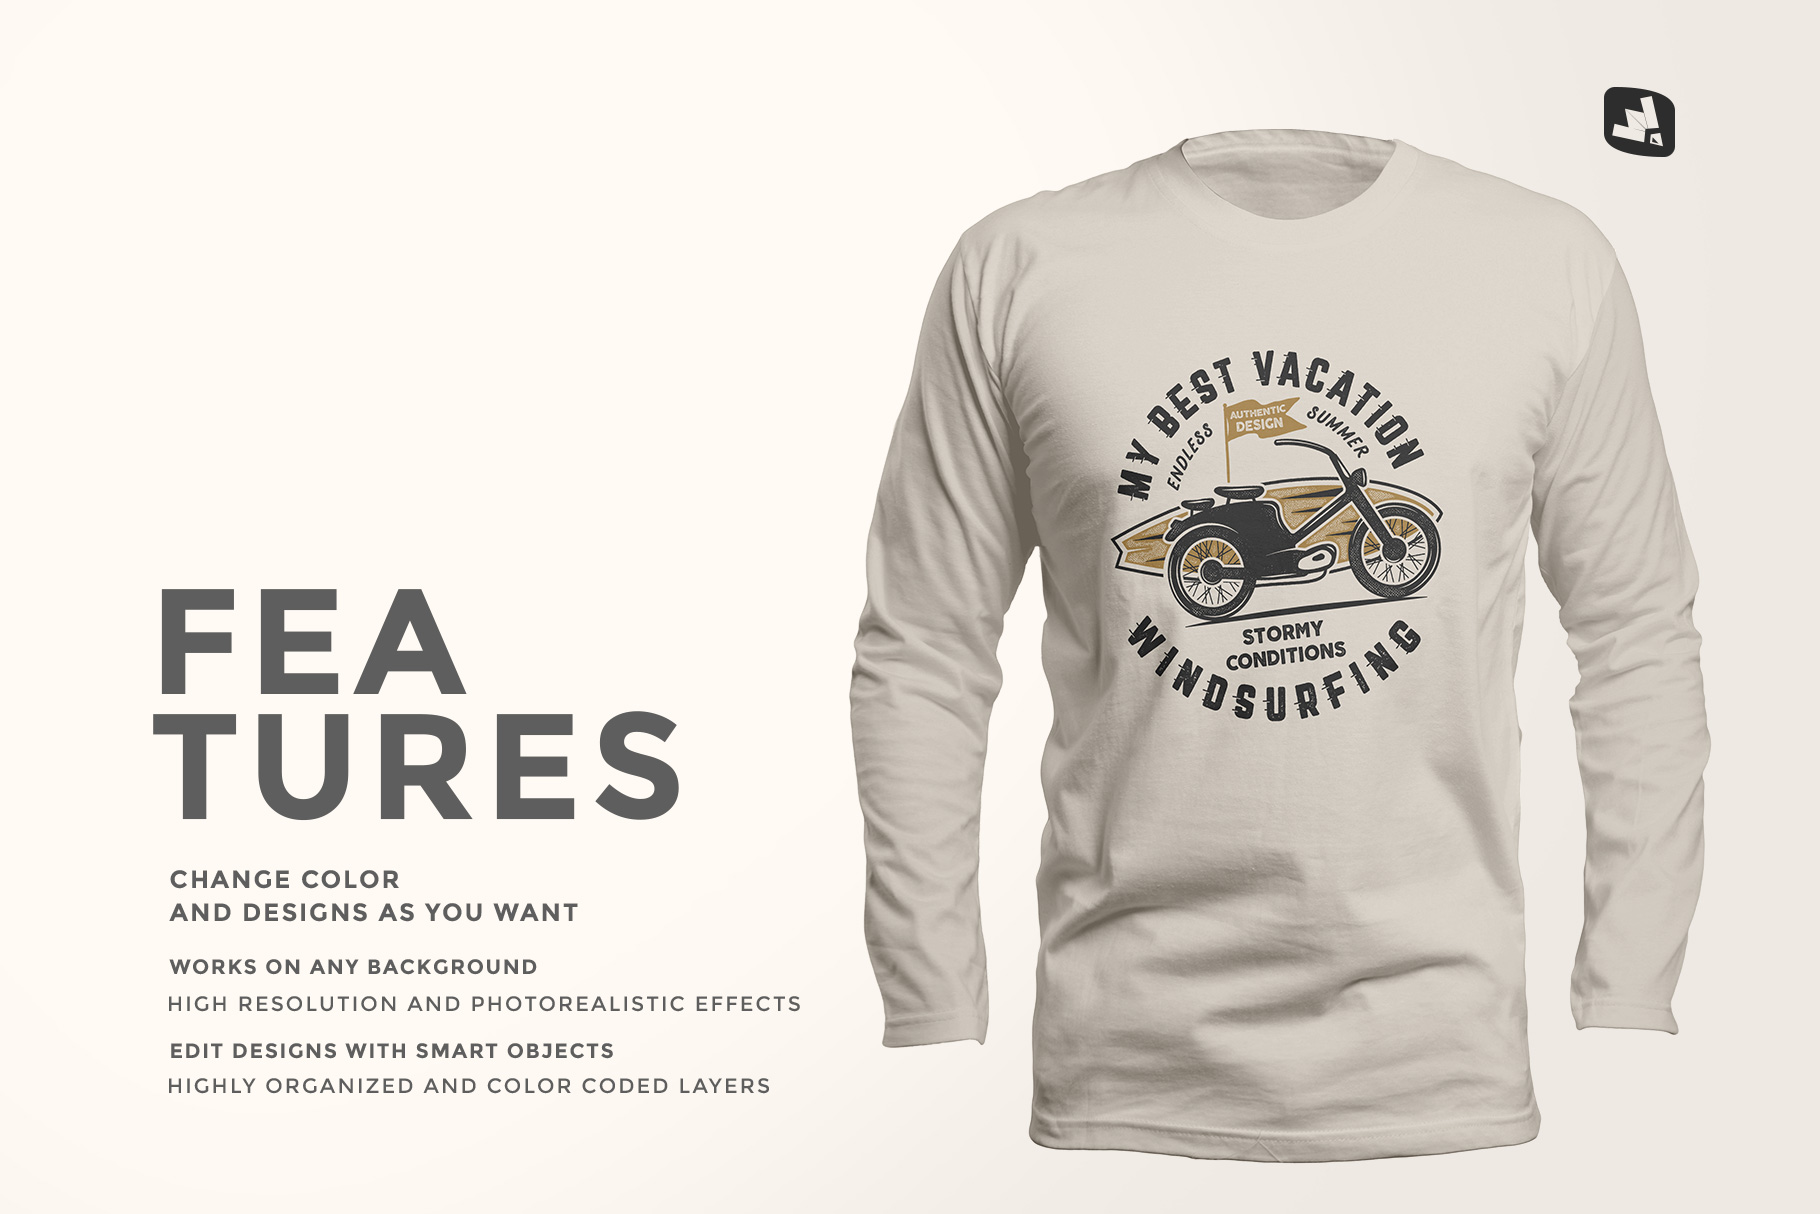 features of the long sleeve round collar tshirt mockup